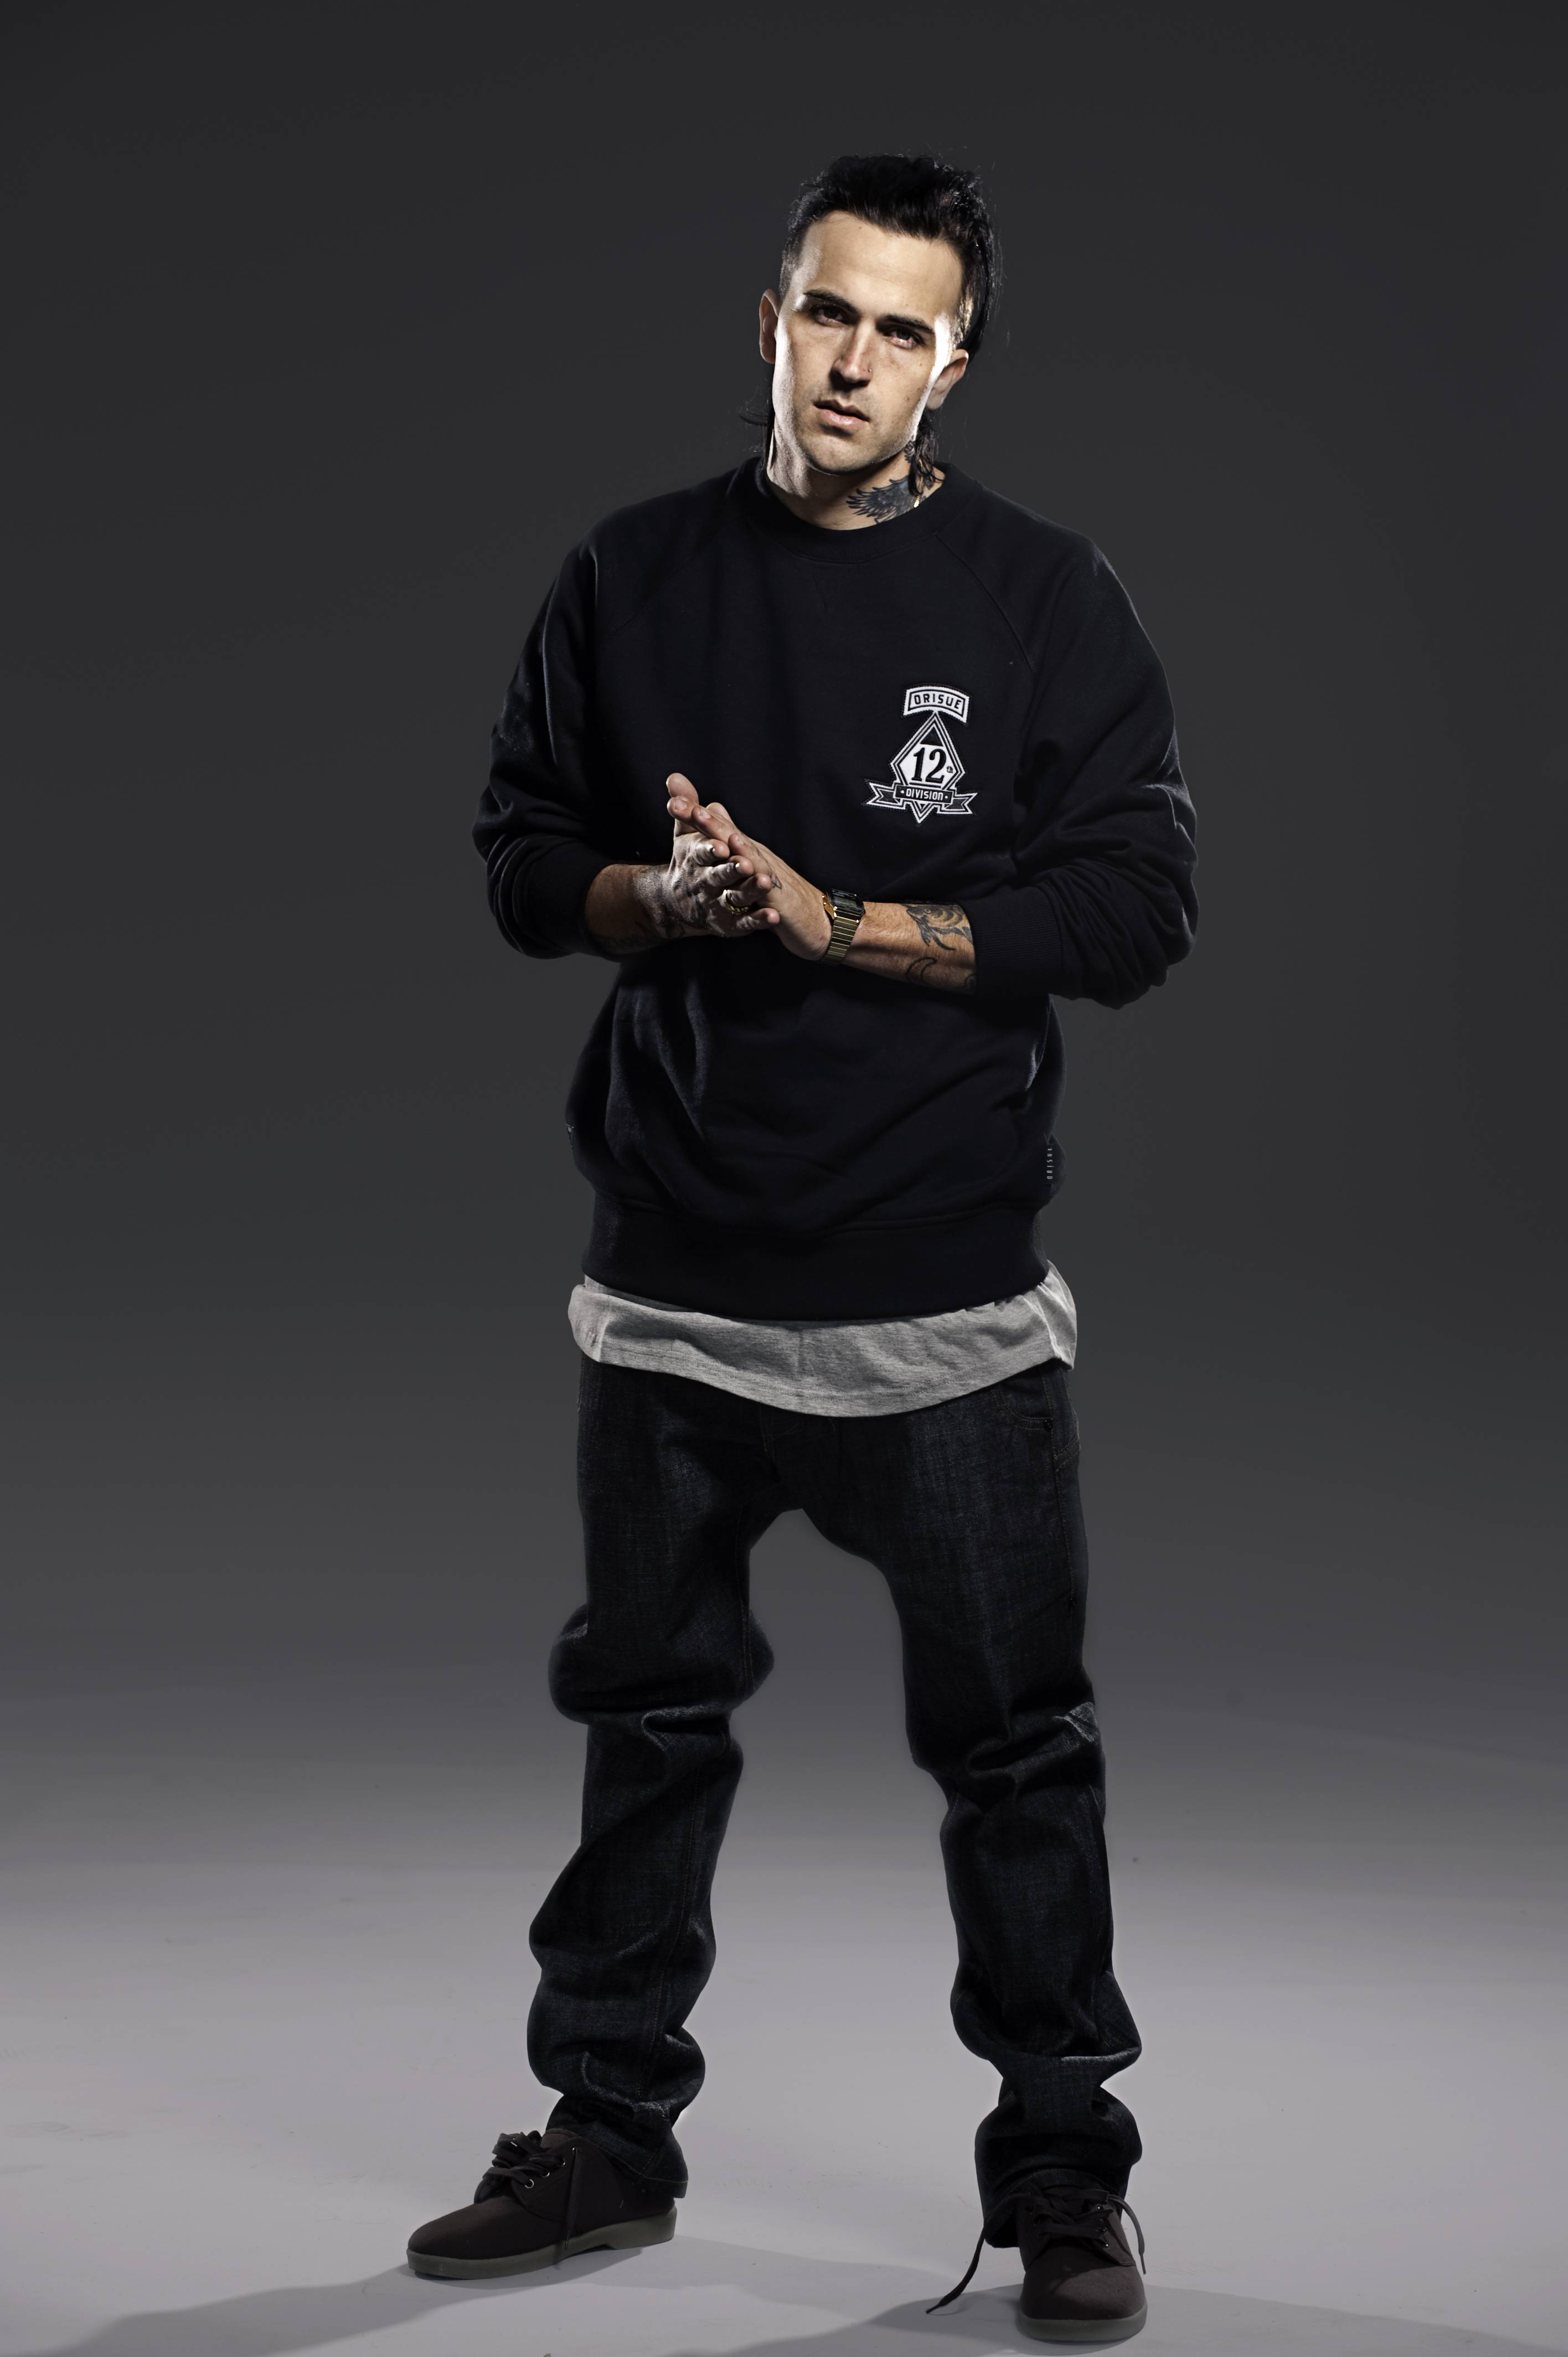 Yelawolf Wallpapers Wallpaper Cave